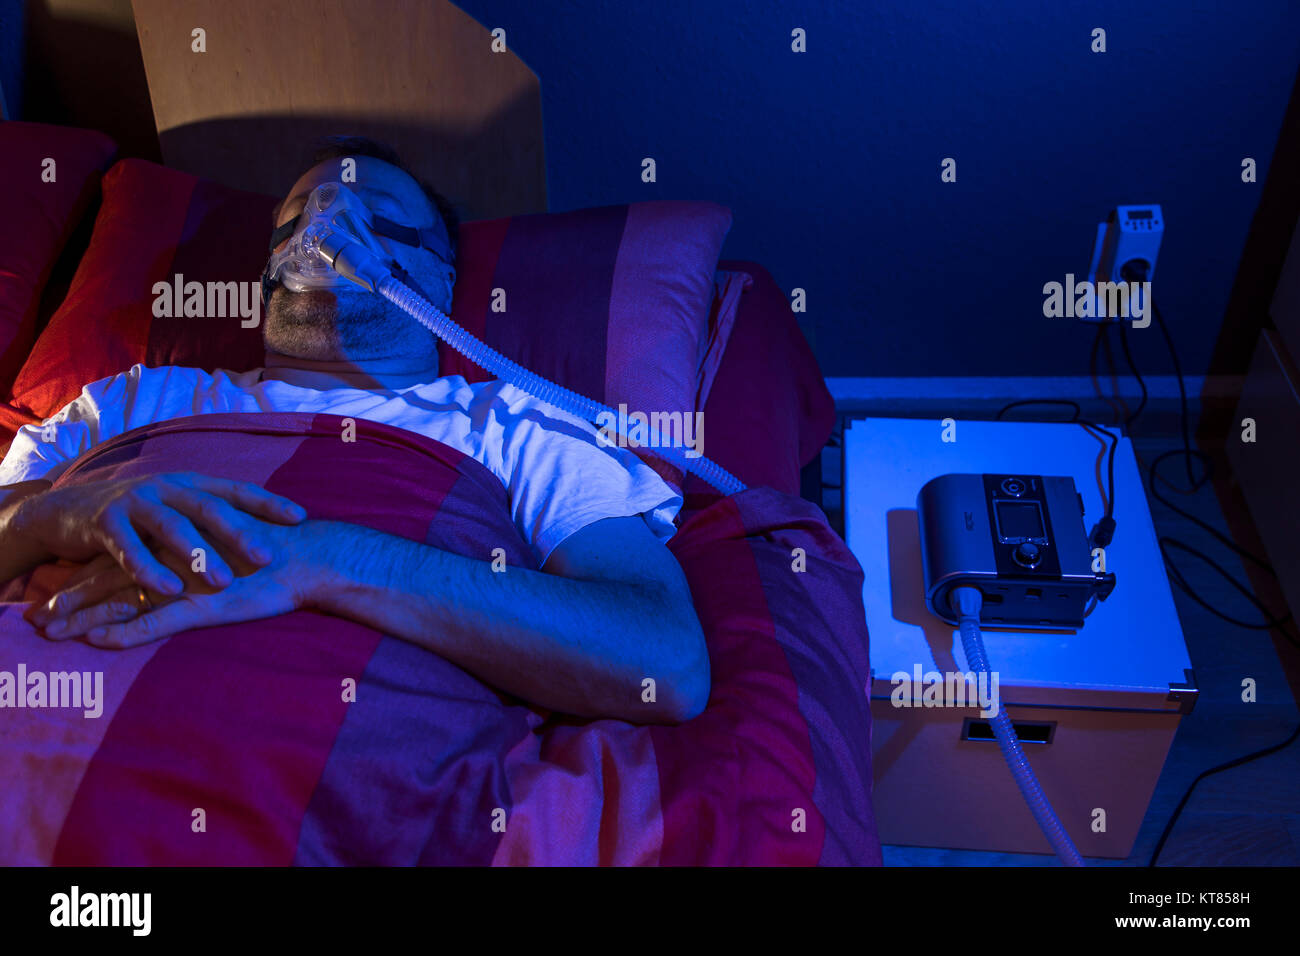 A man with sleep apnea syndrome, wears a CPAP mask while sleeping, breathing mask that presses air into the airways - Stock Image